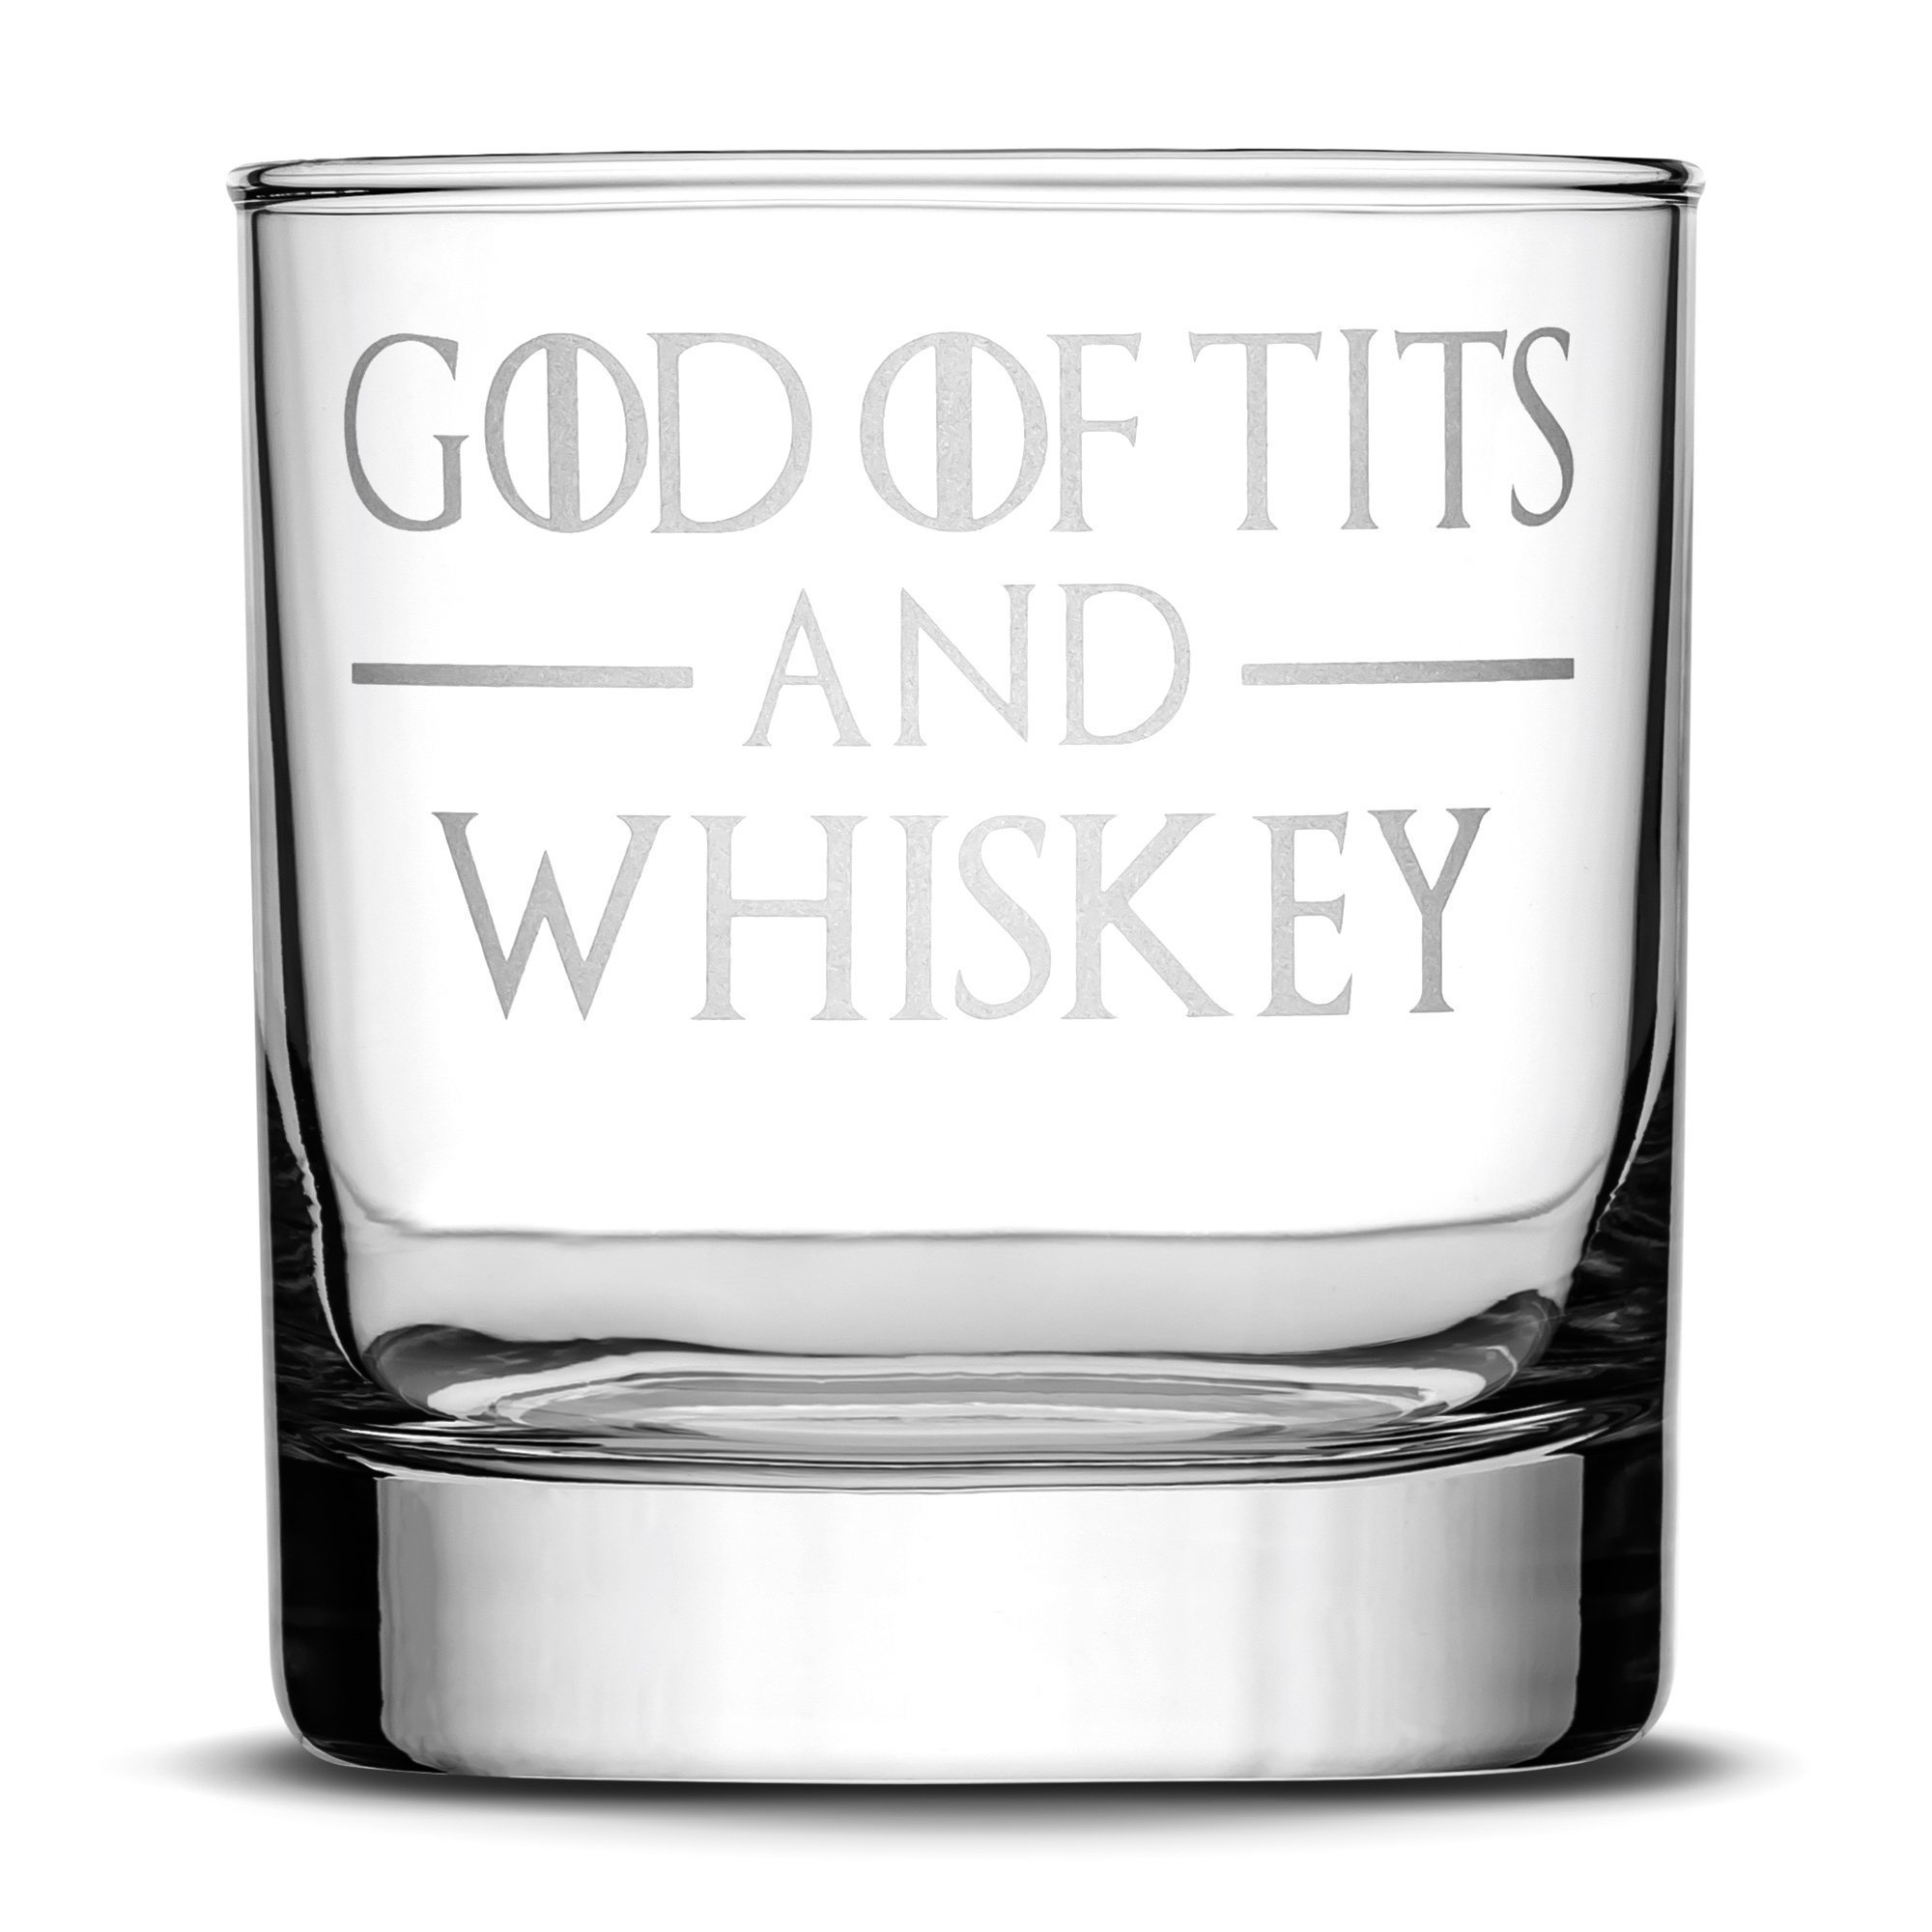 Premium Game of Thrones Whiskey Glass, God of Tits and Whiskey, Hand Etched 10oz Rocks Glass, Made in USA, Highball Gifts, Sand Carved by Integrity Bottles